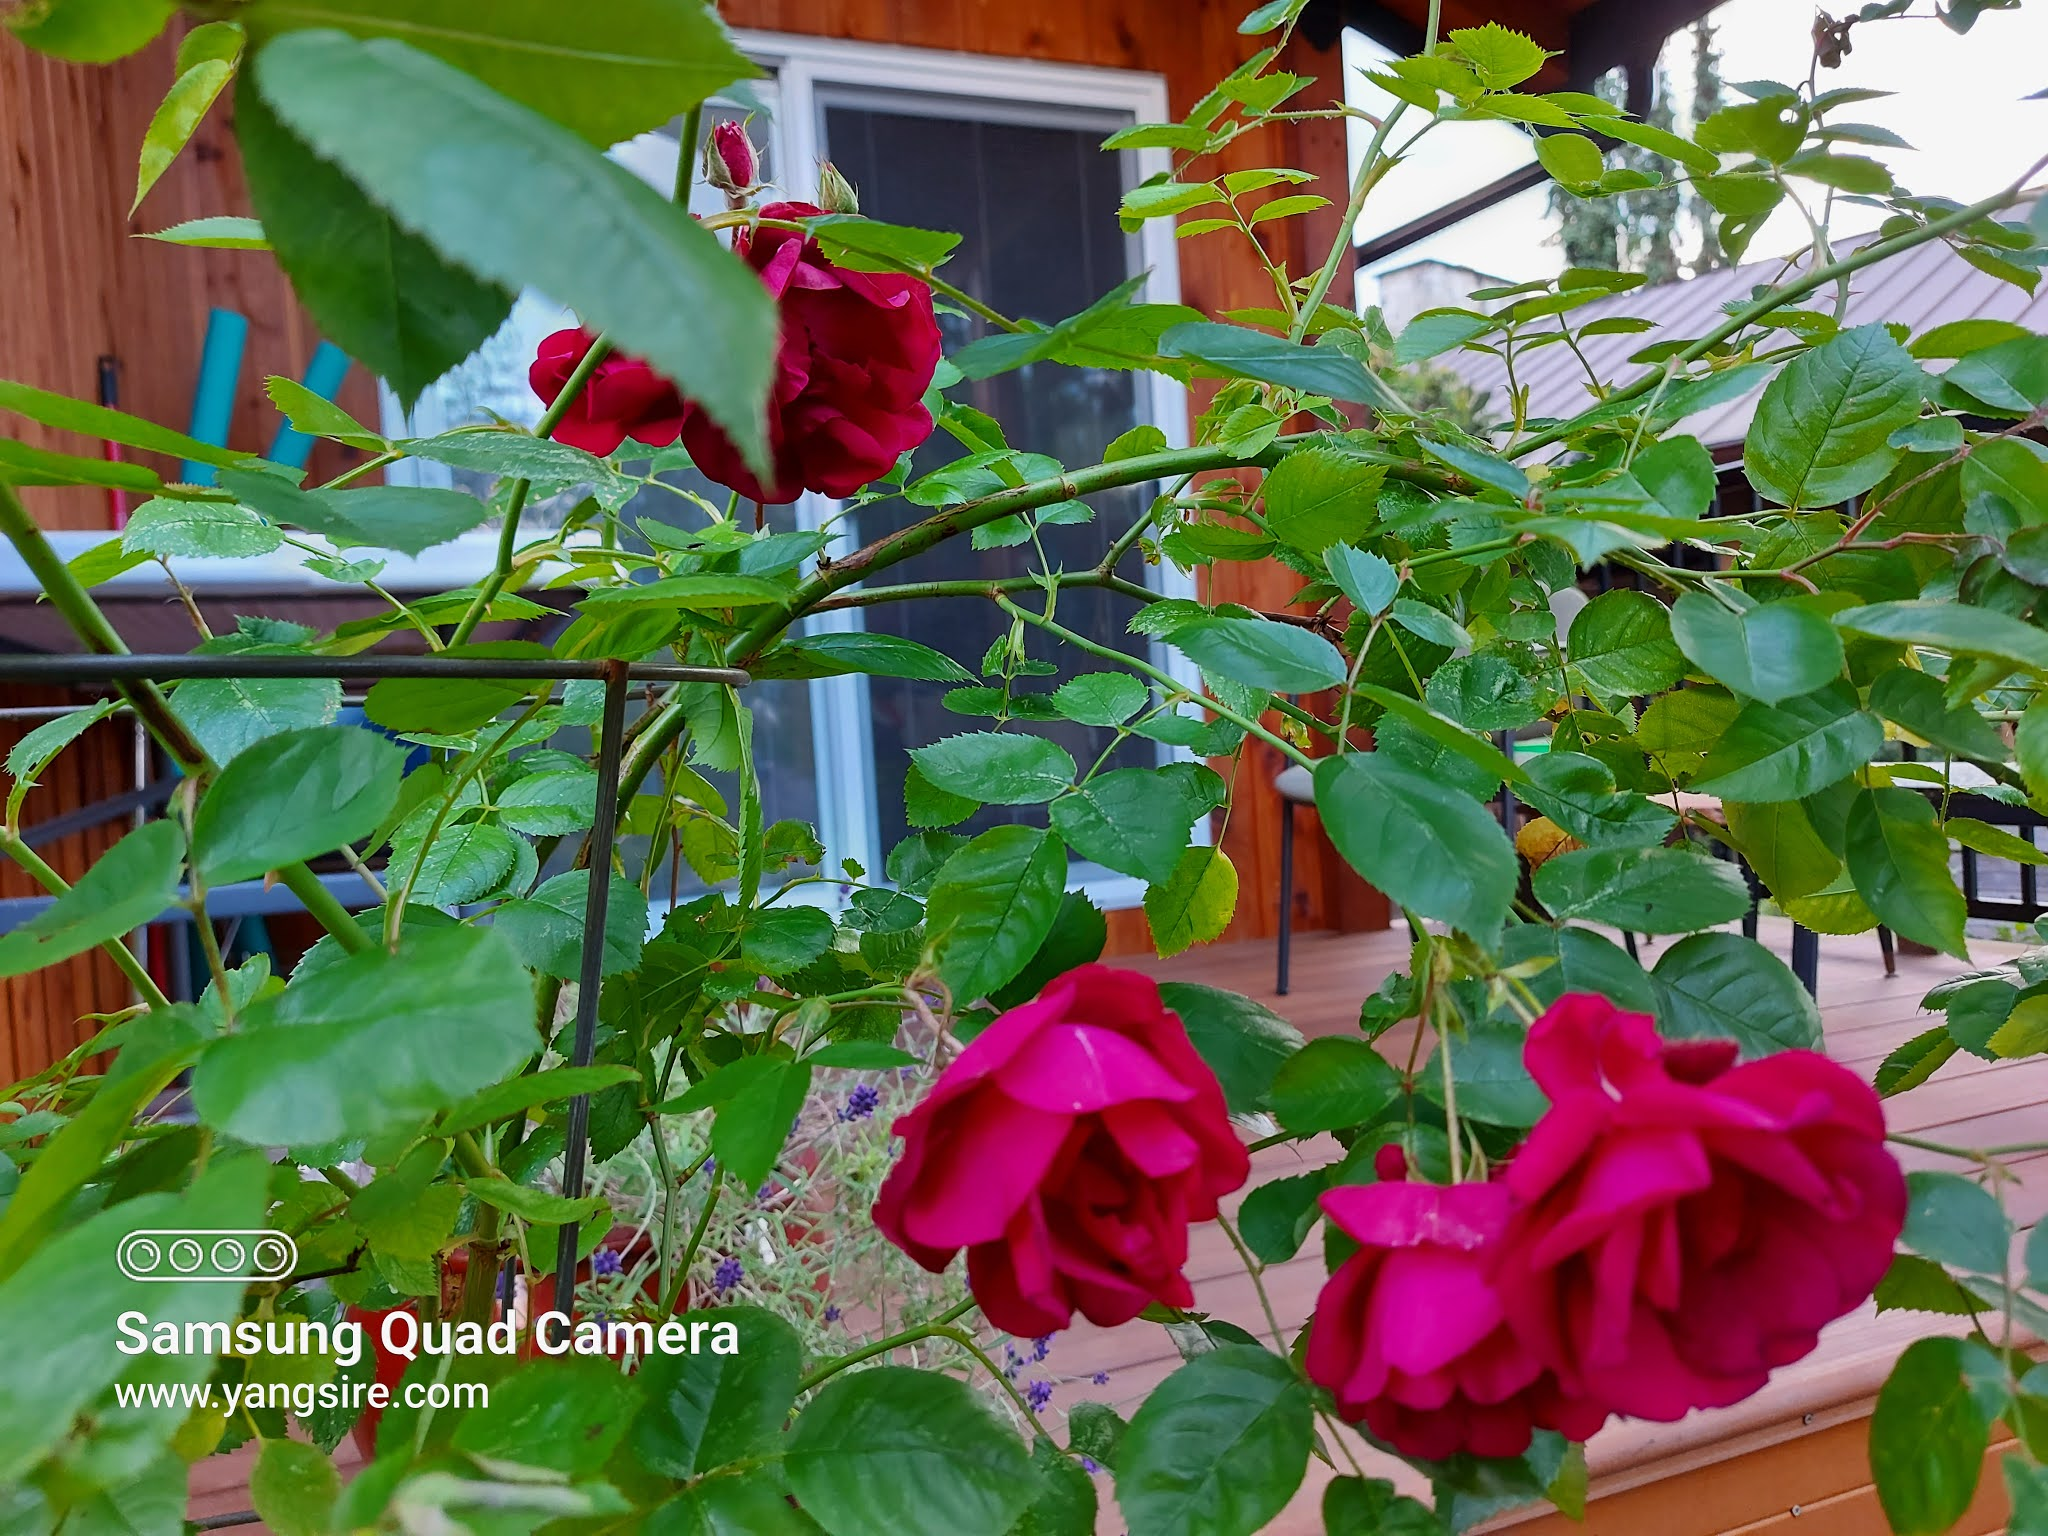 A lovely red rose flowers